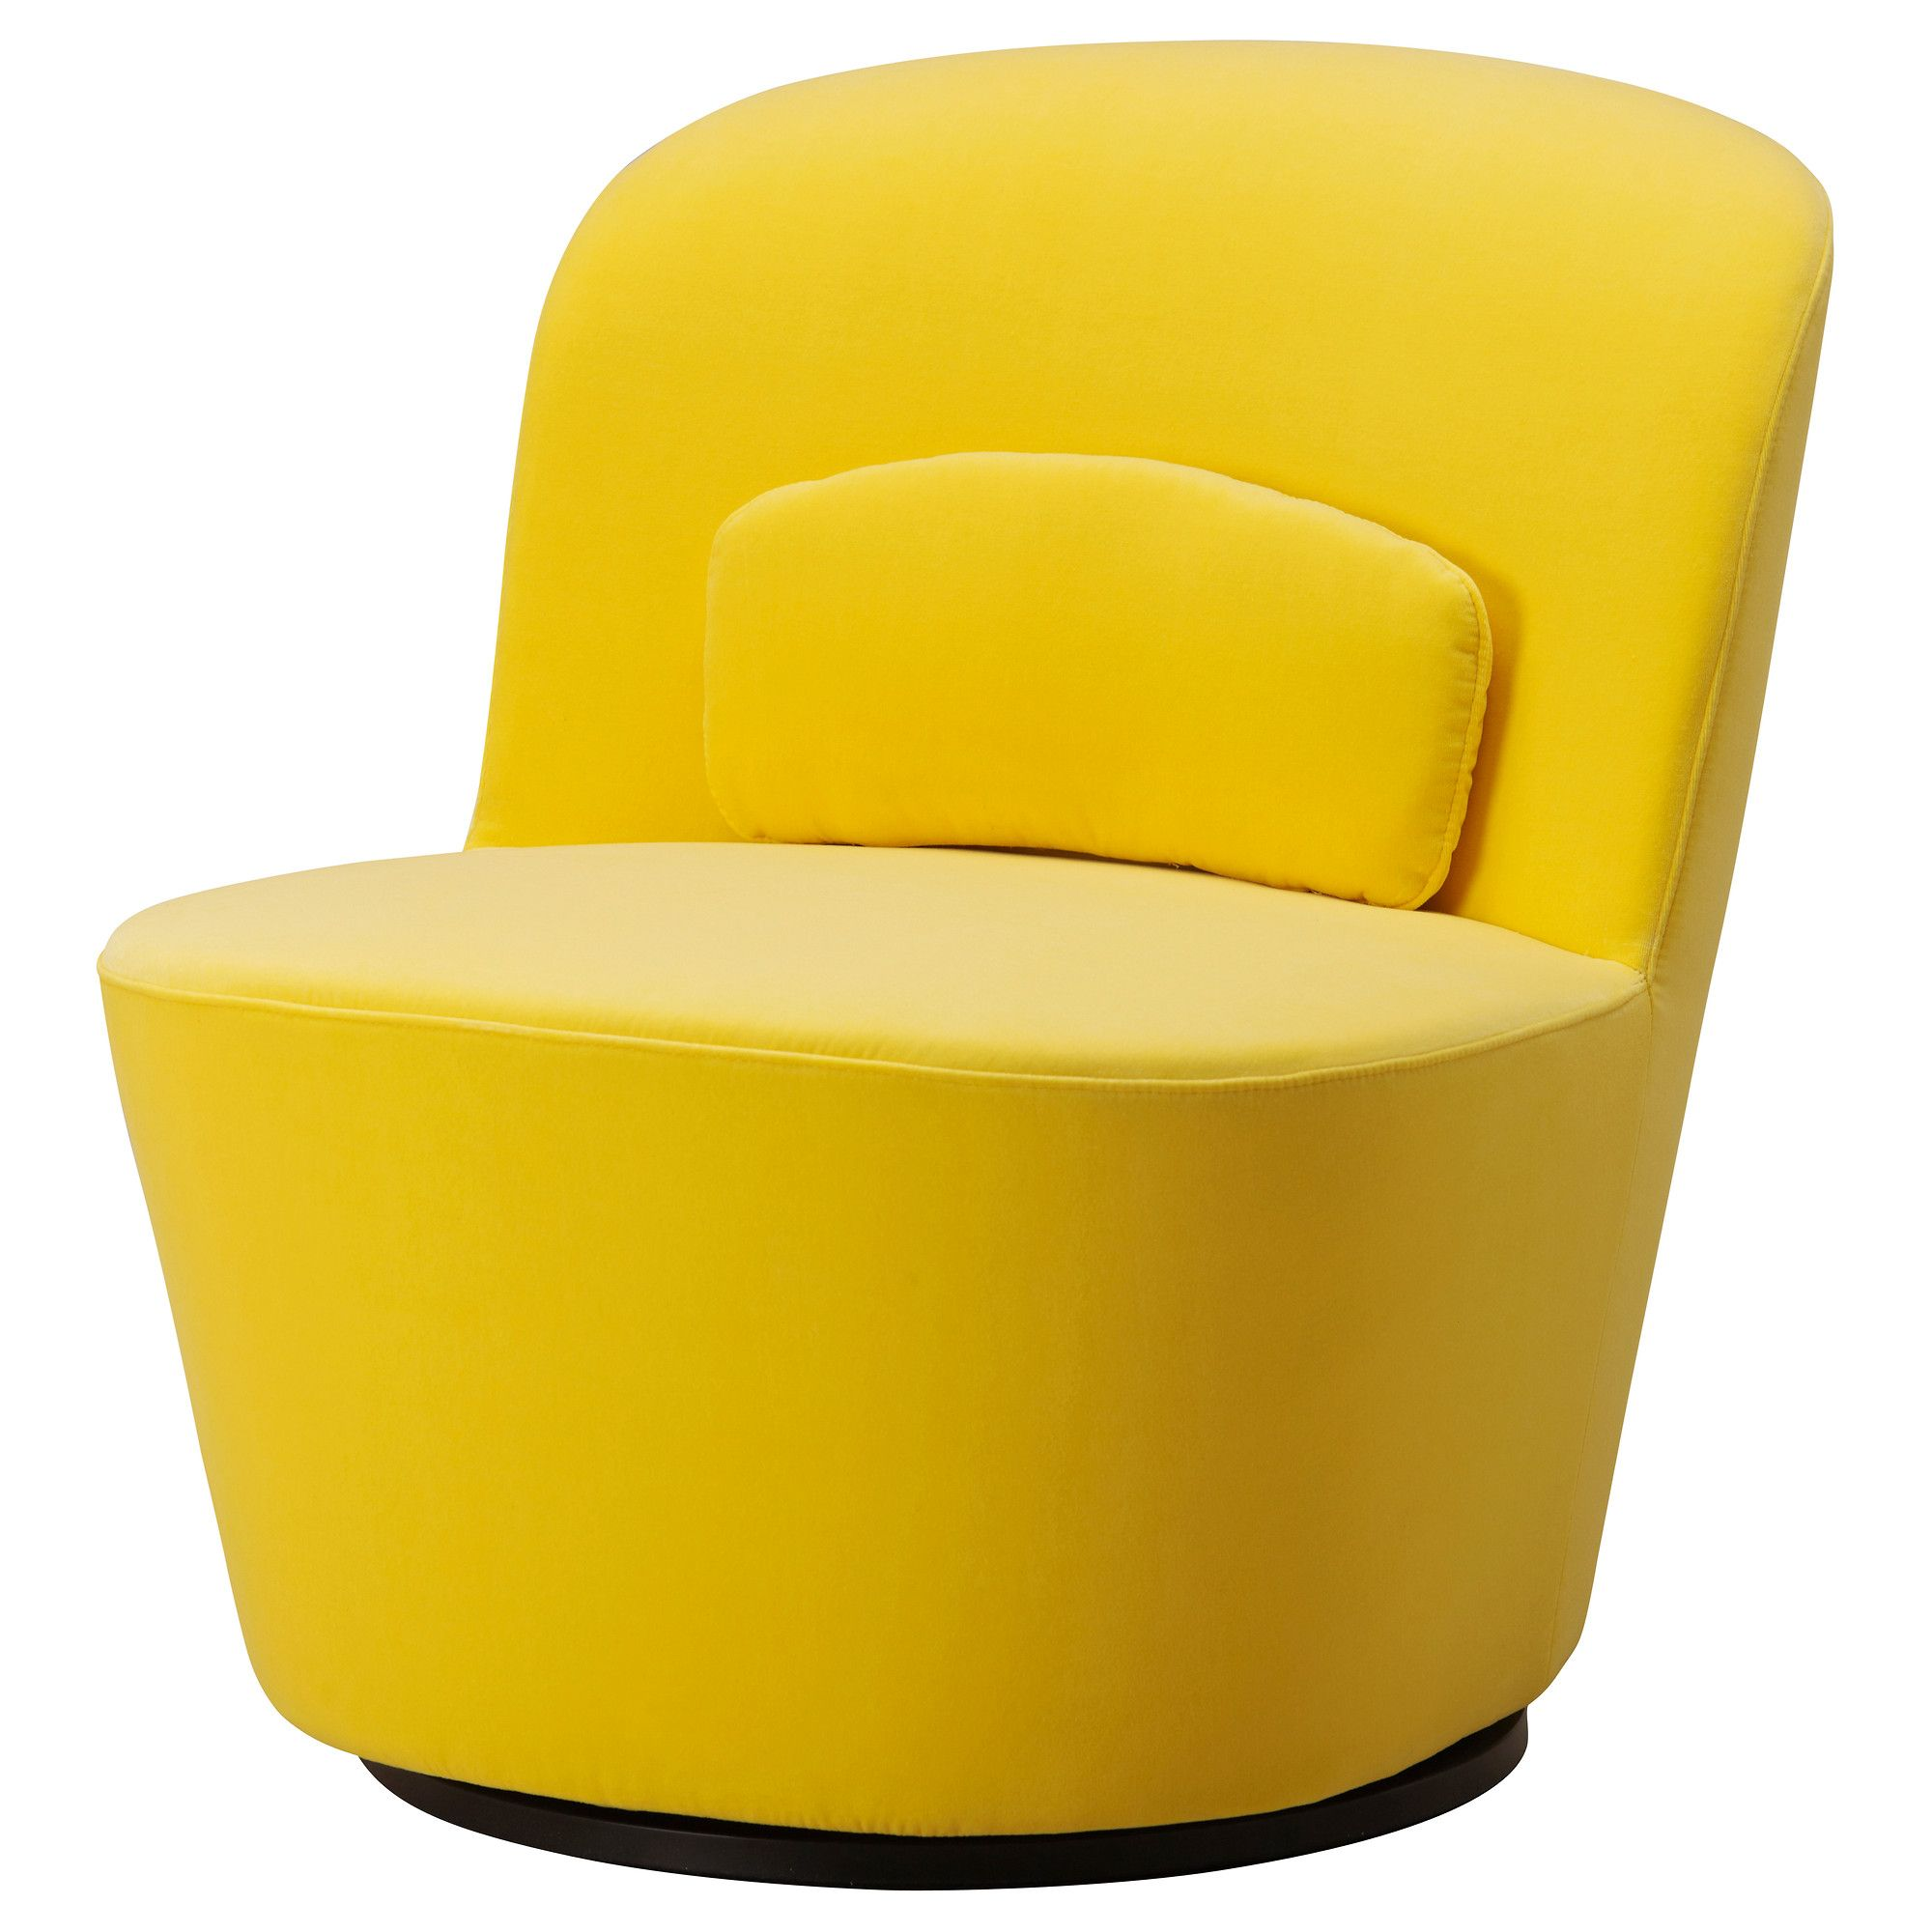 Ikea Yellow Chair Great Colour! Stockholm Swivel Easy Chair - Sandbacka